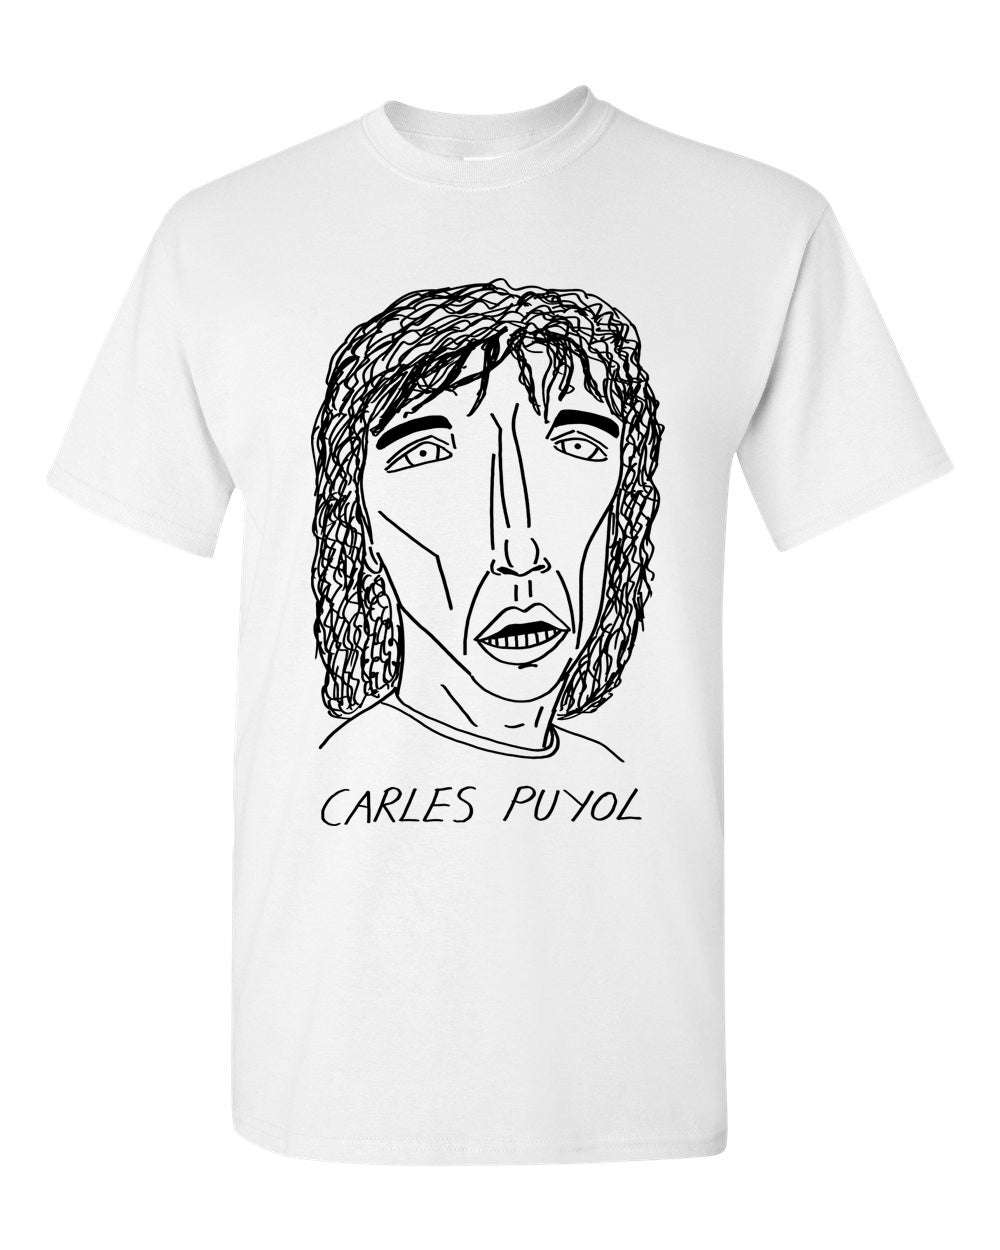 Badly Drawn Footballers T-shirt - Carles Puyol